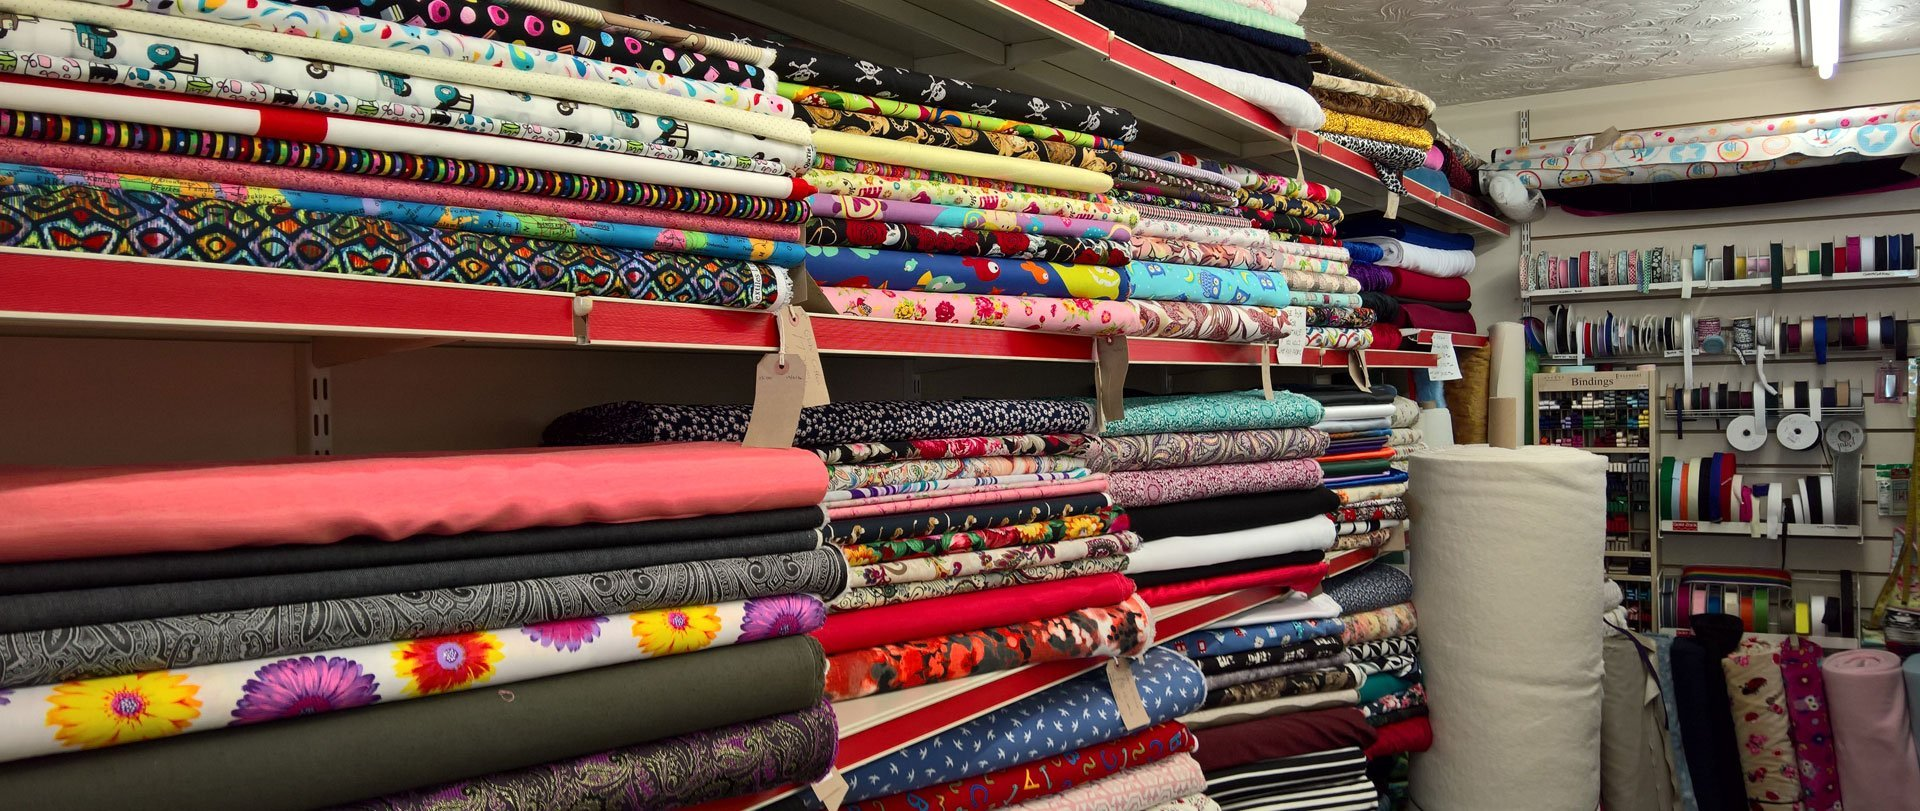 bunch of fabric materials